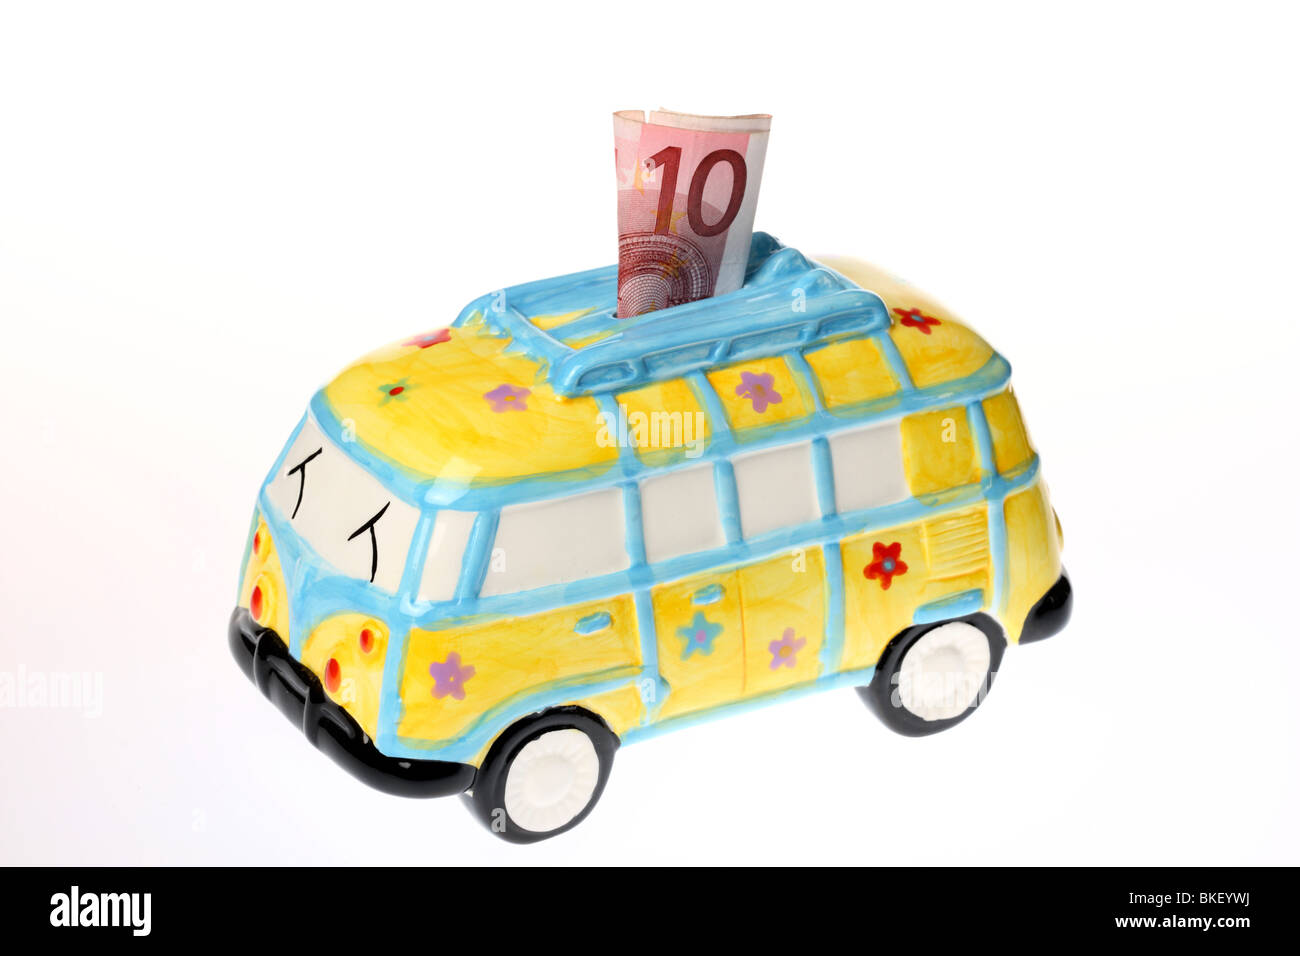 coin bank in form of a bus, ceramic - Stock Image